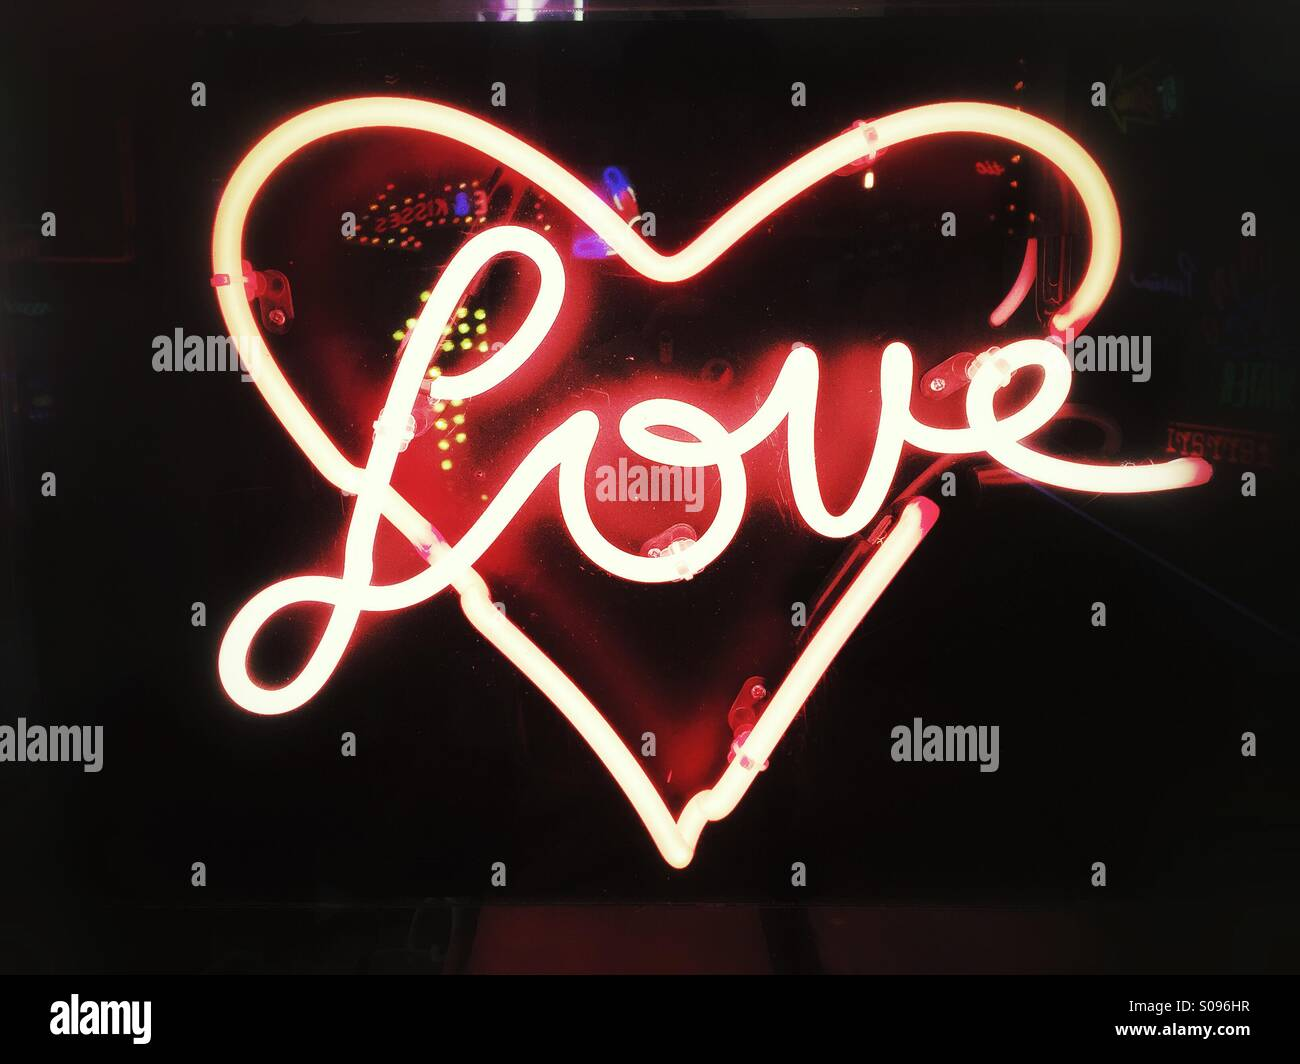 Love-neon sign - Stock Image